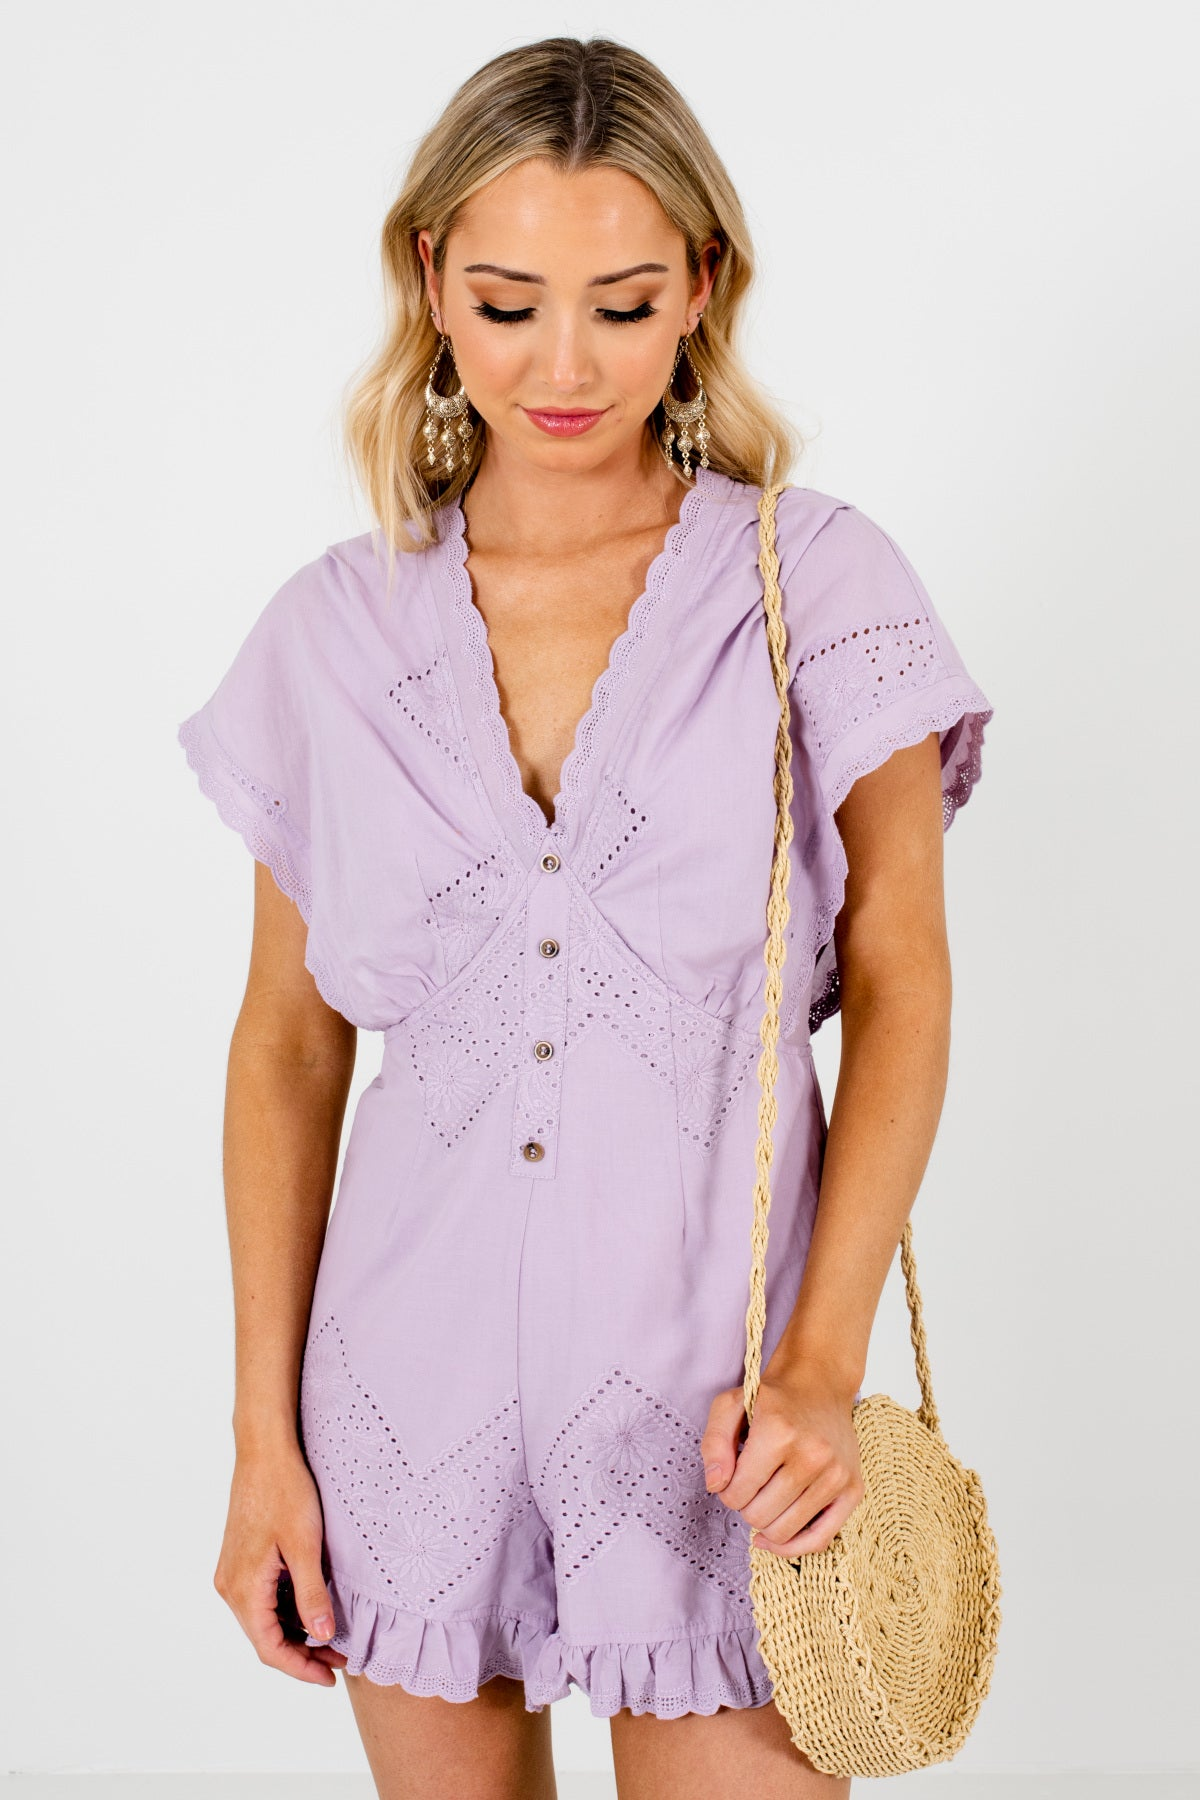 Lilac Purple Eyelet Lace Scalloped Ruffle Boutique Rompers for Women